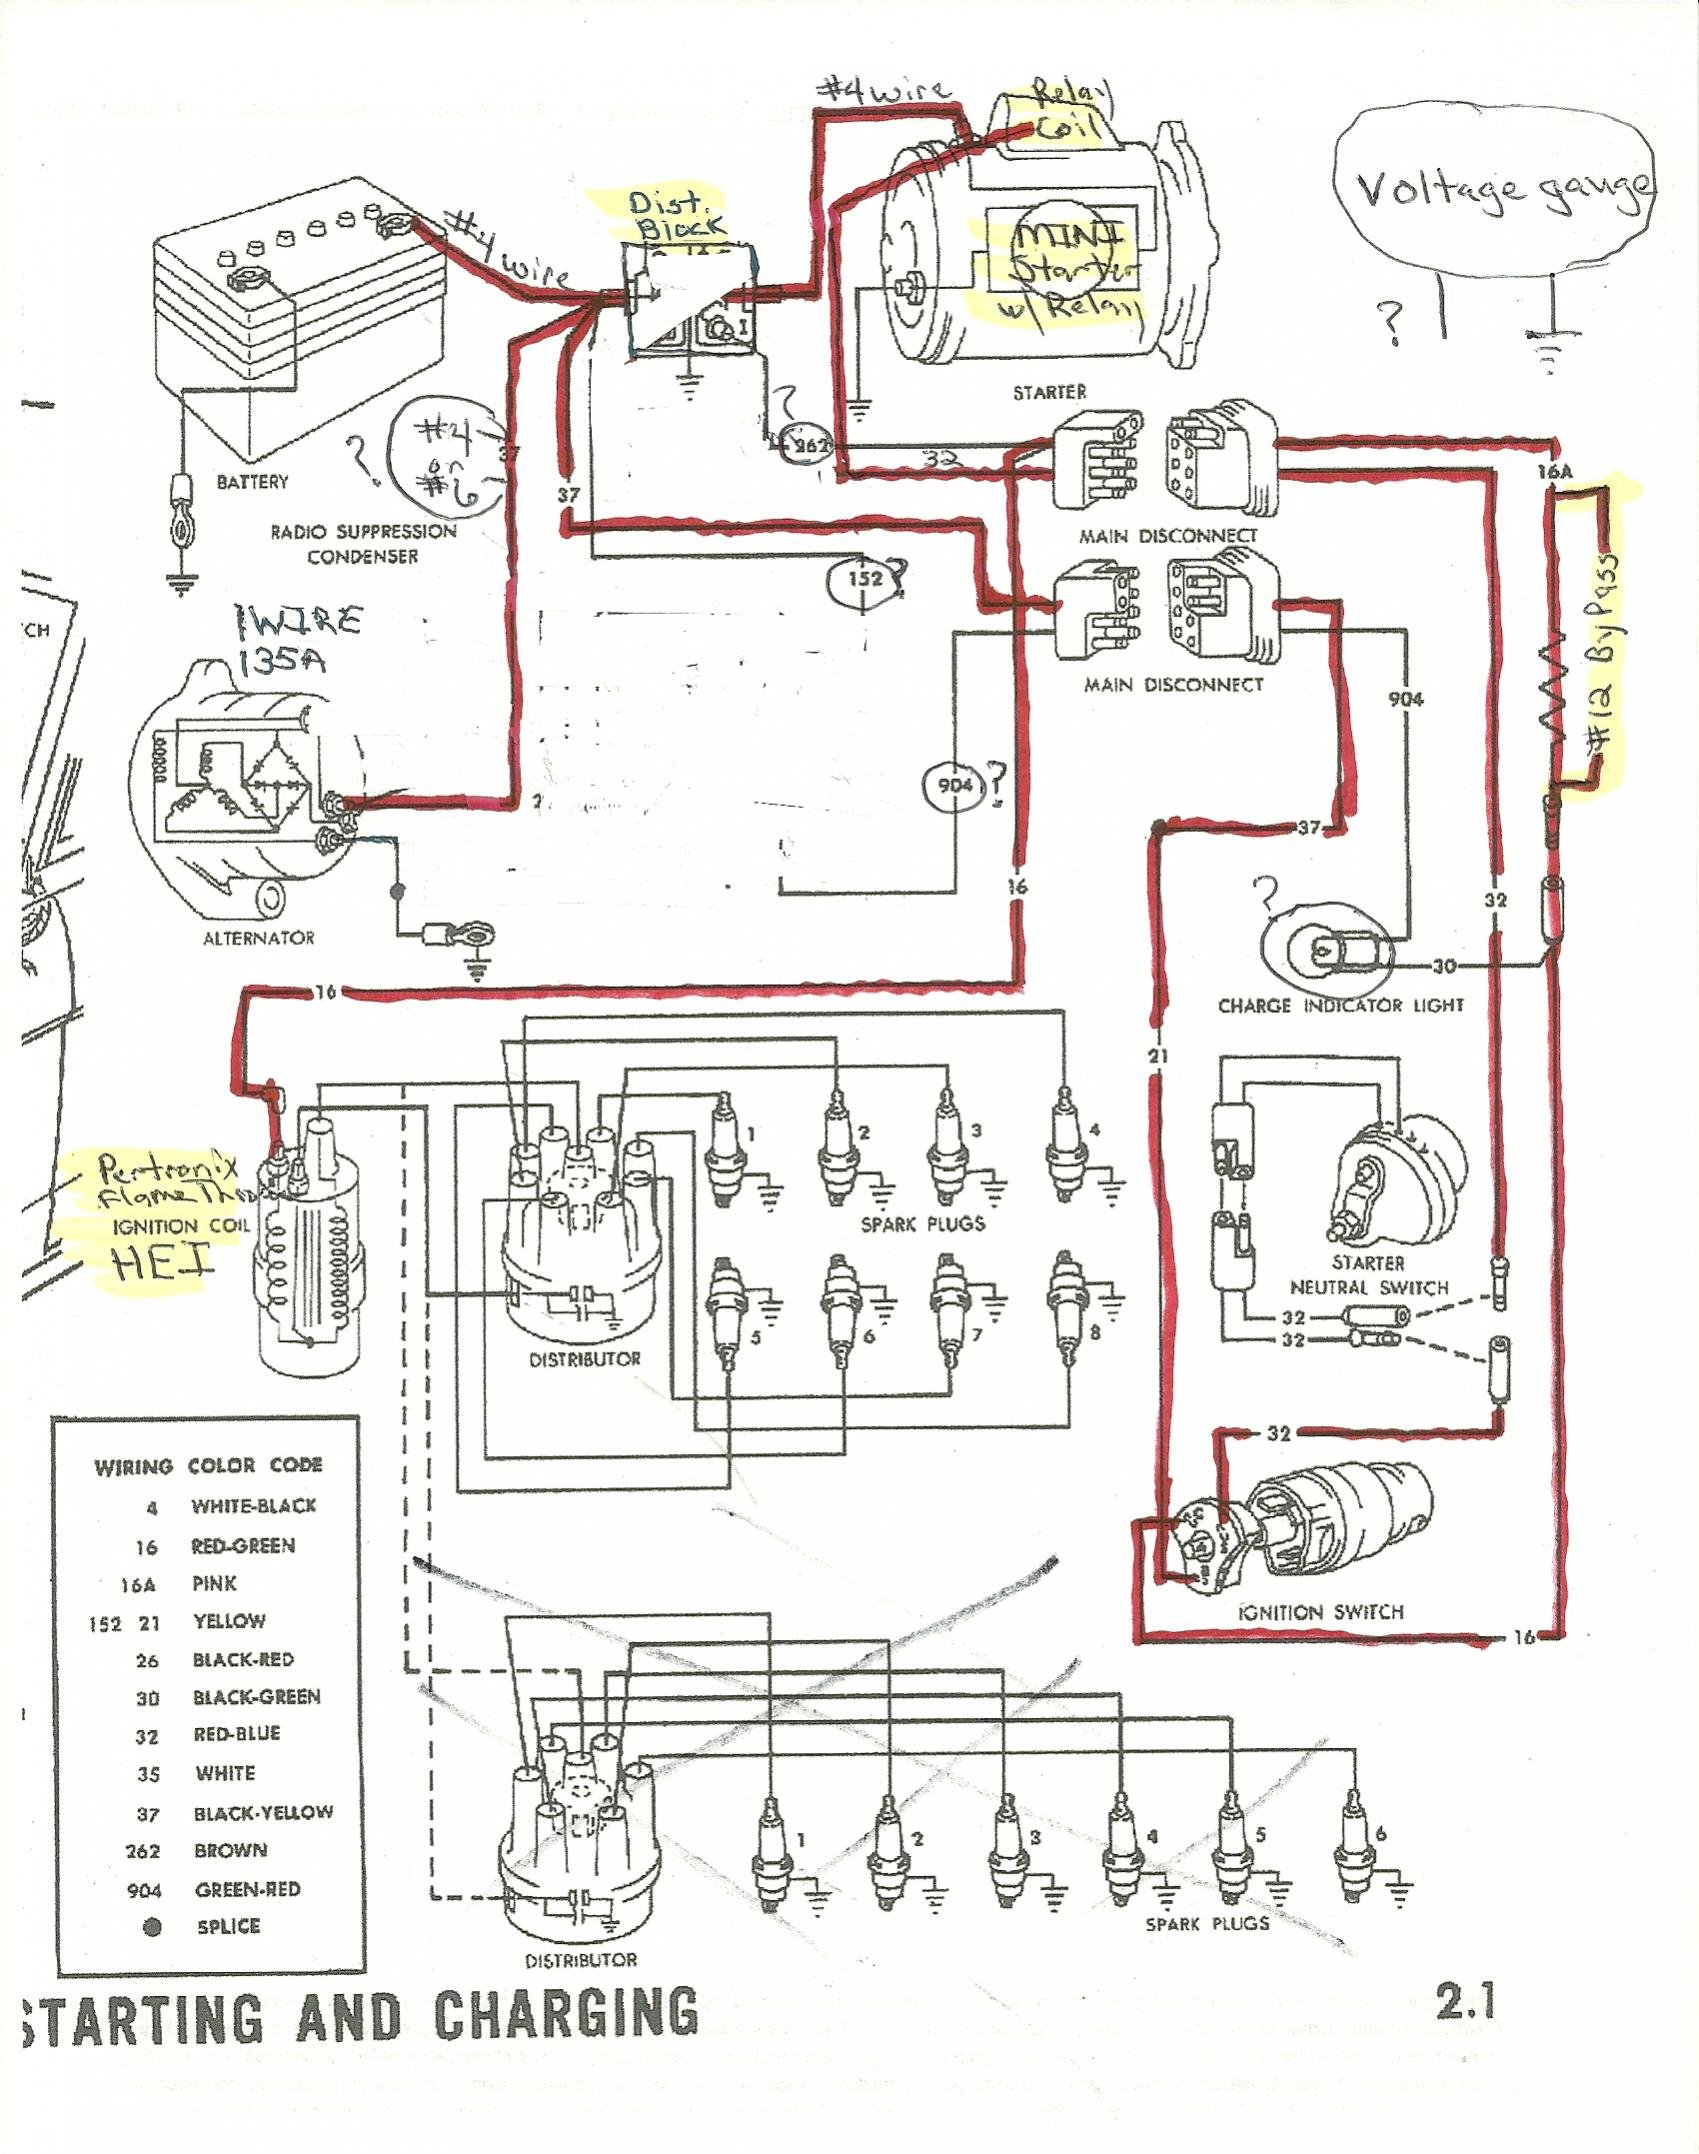 Ford Alternator Wire Diagram 2 Wiring Library Distributor Schematic 1965 Starter And Mustang Forum Dodge Diesel Voltage Regulator